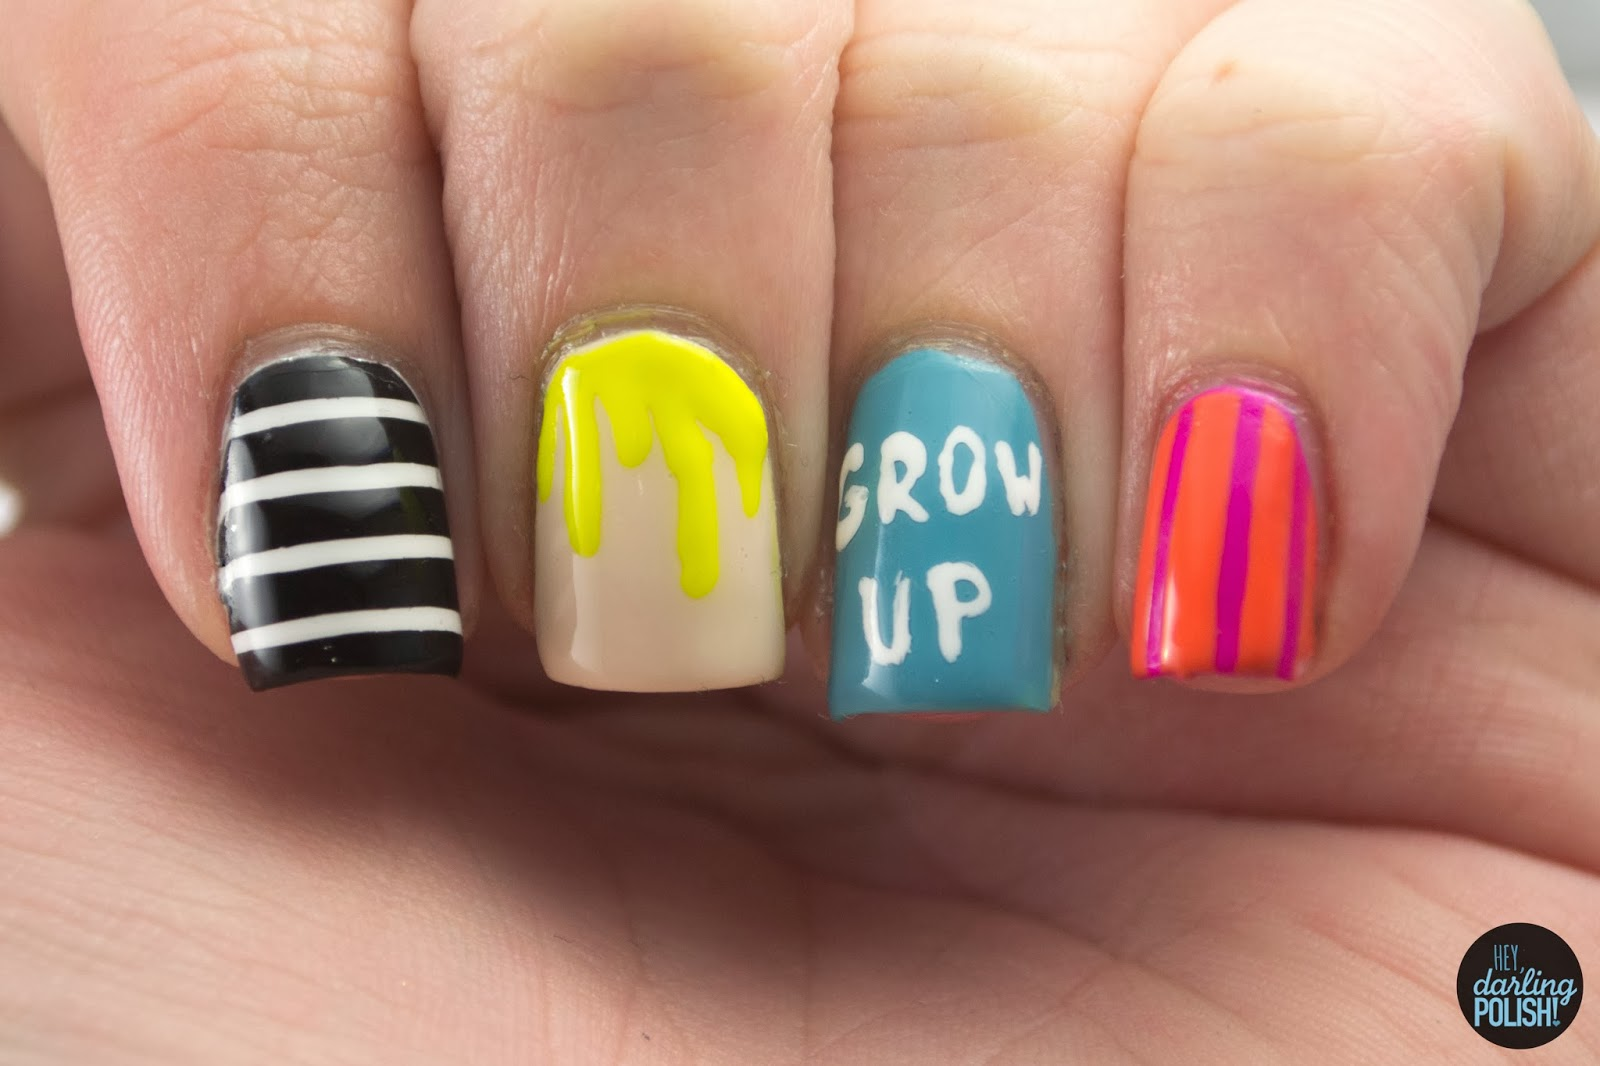 nails, nail art, nail polish, polish, hayley williams, lacquer legion, adoration, paramore, hey darling polish